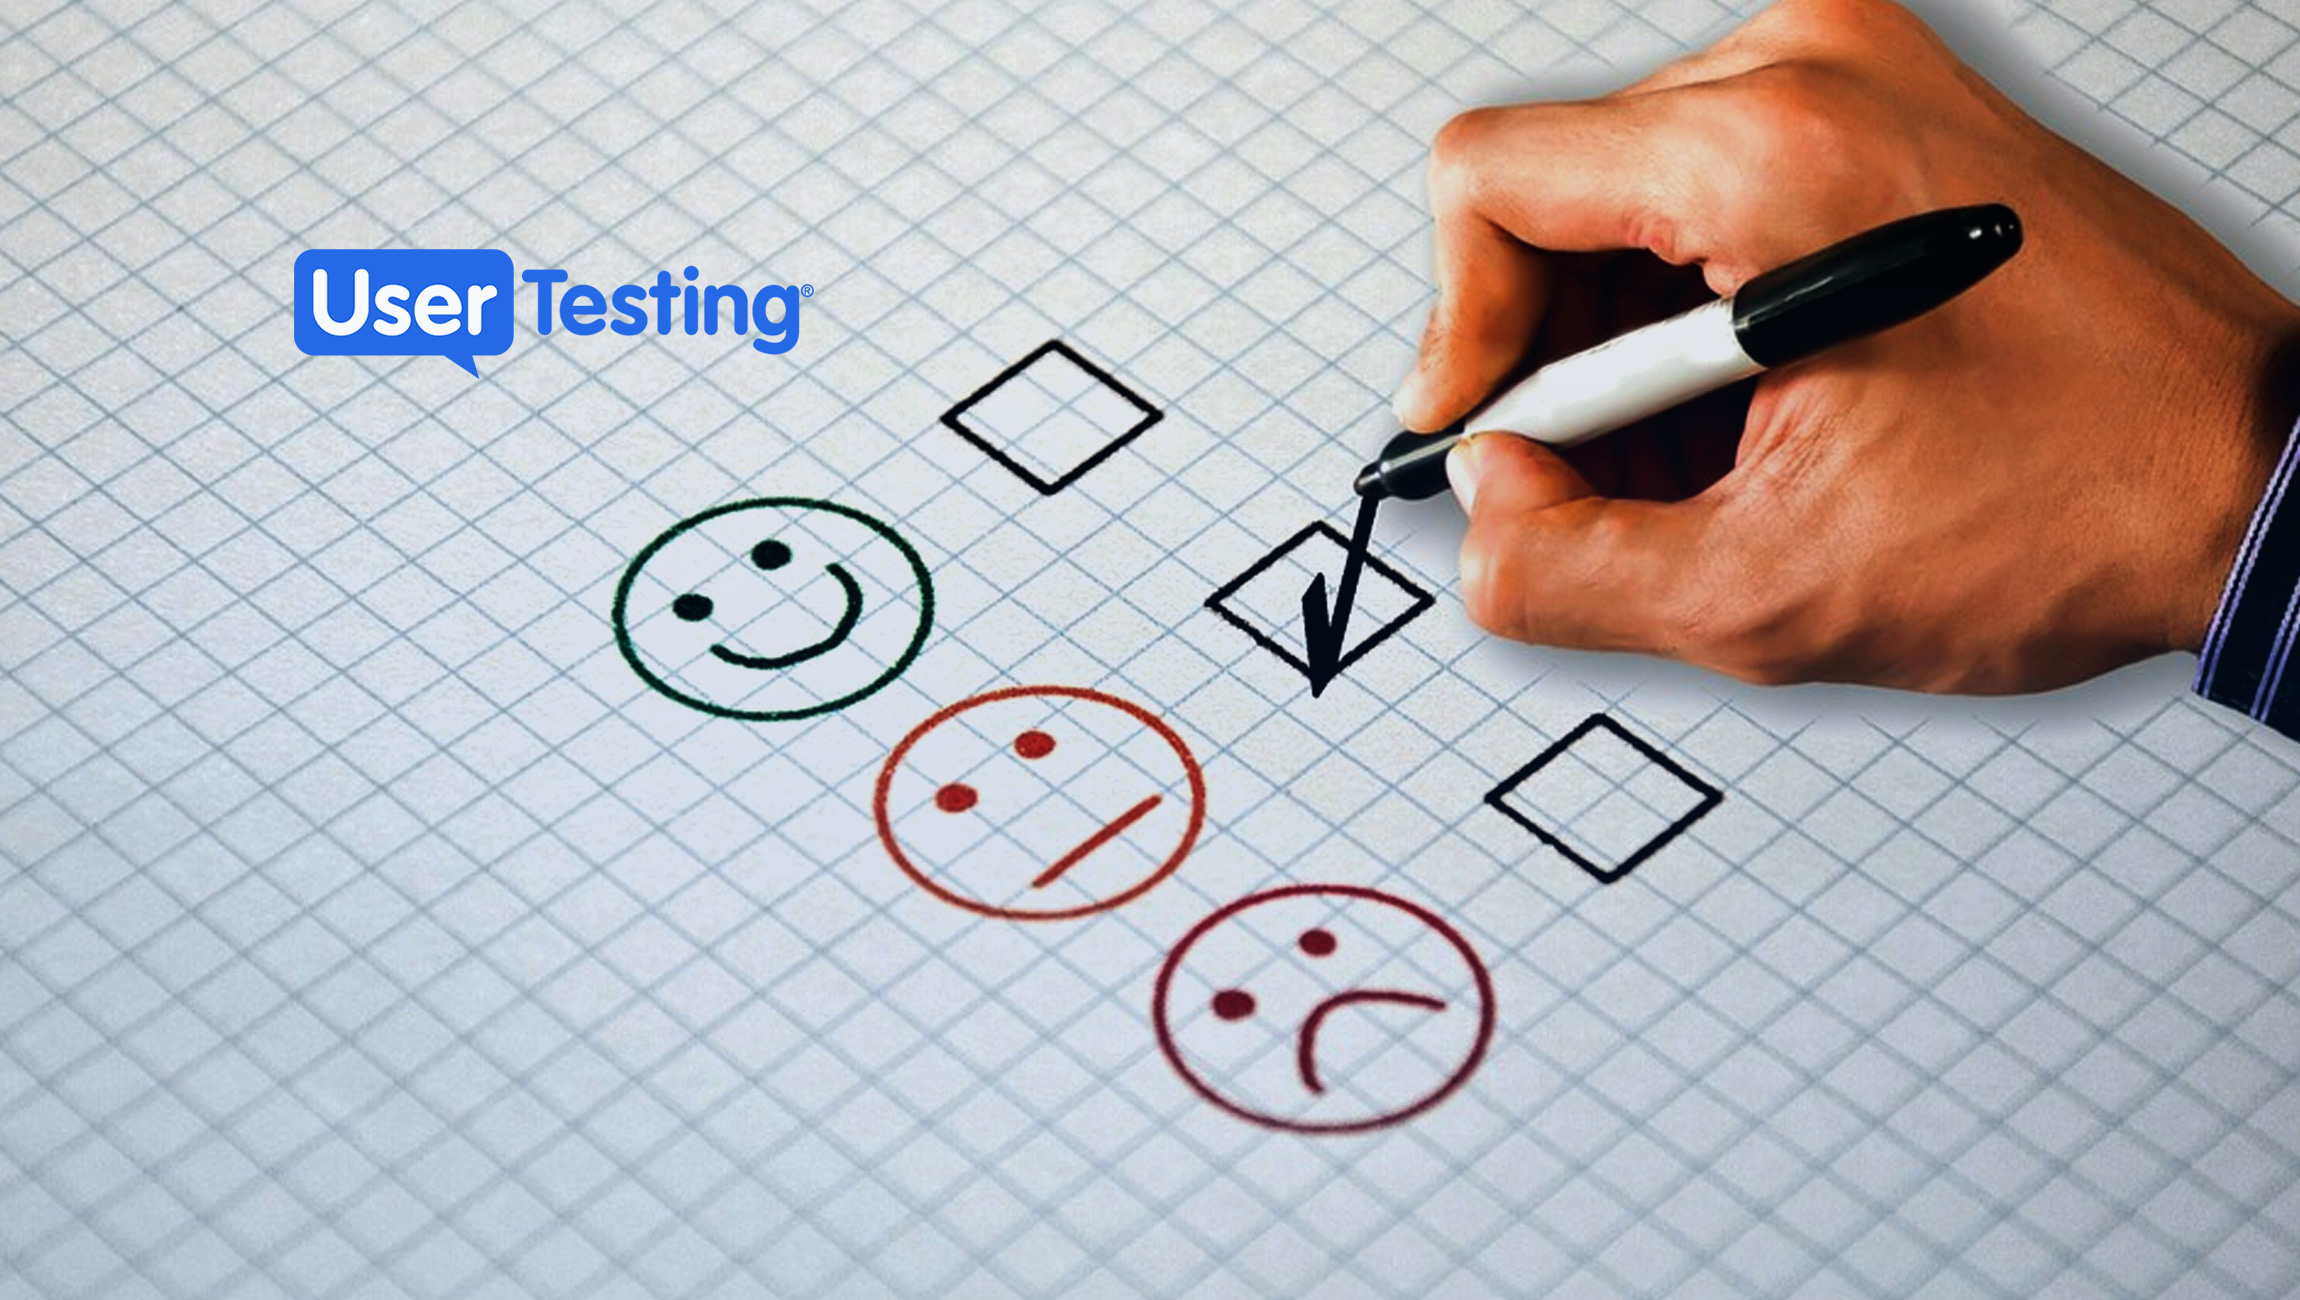 UserTesting Study Reveals What 11 World-Class Companies Do to Be Customer Experience Leaders